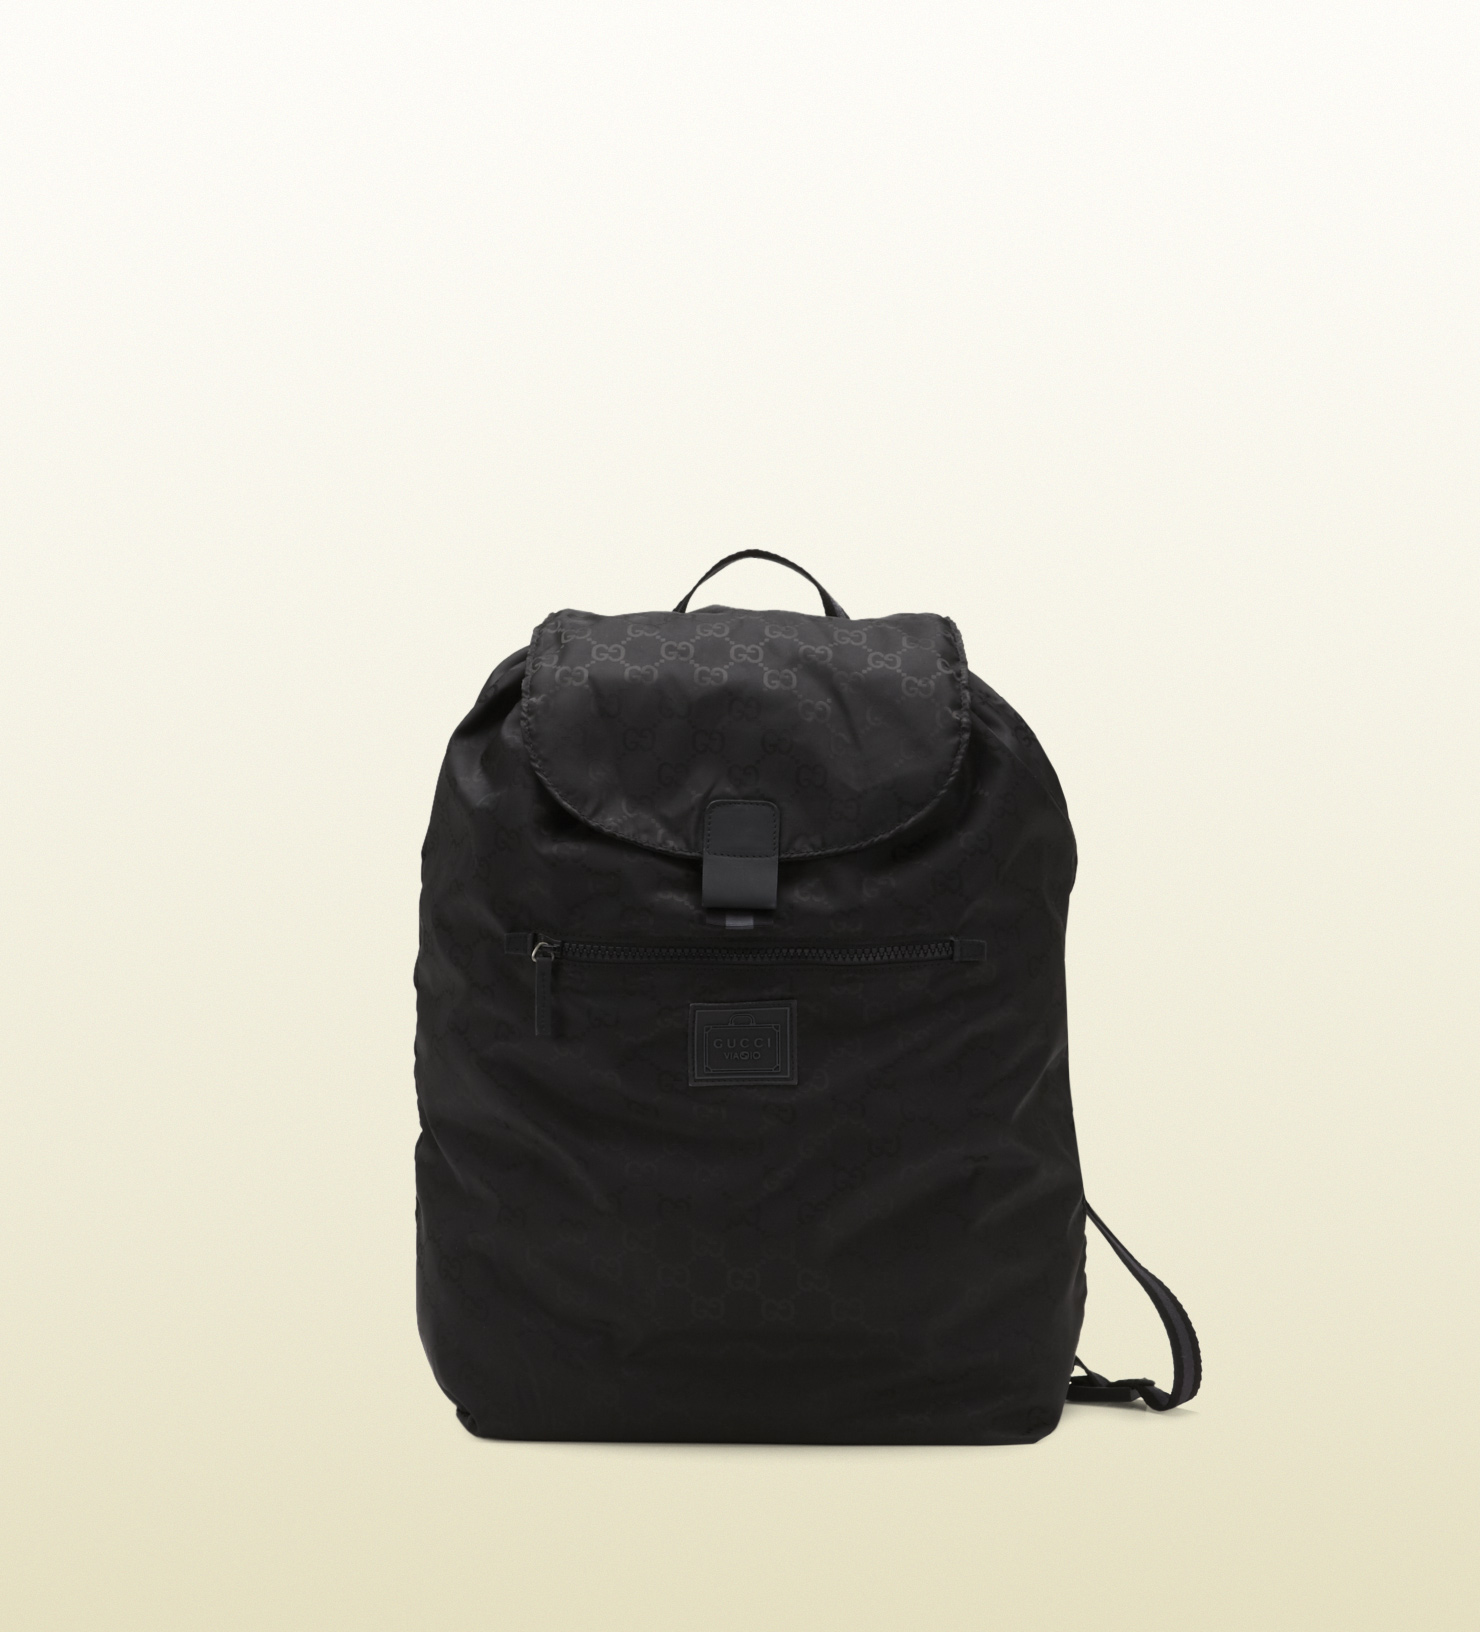 Gucci Black Gg Nylon Backpack From Viaggio Collection in ...